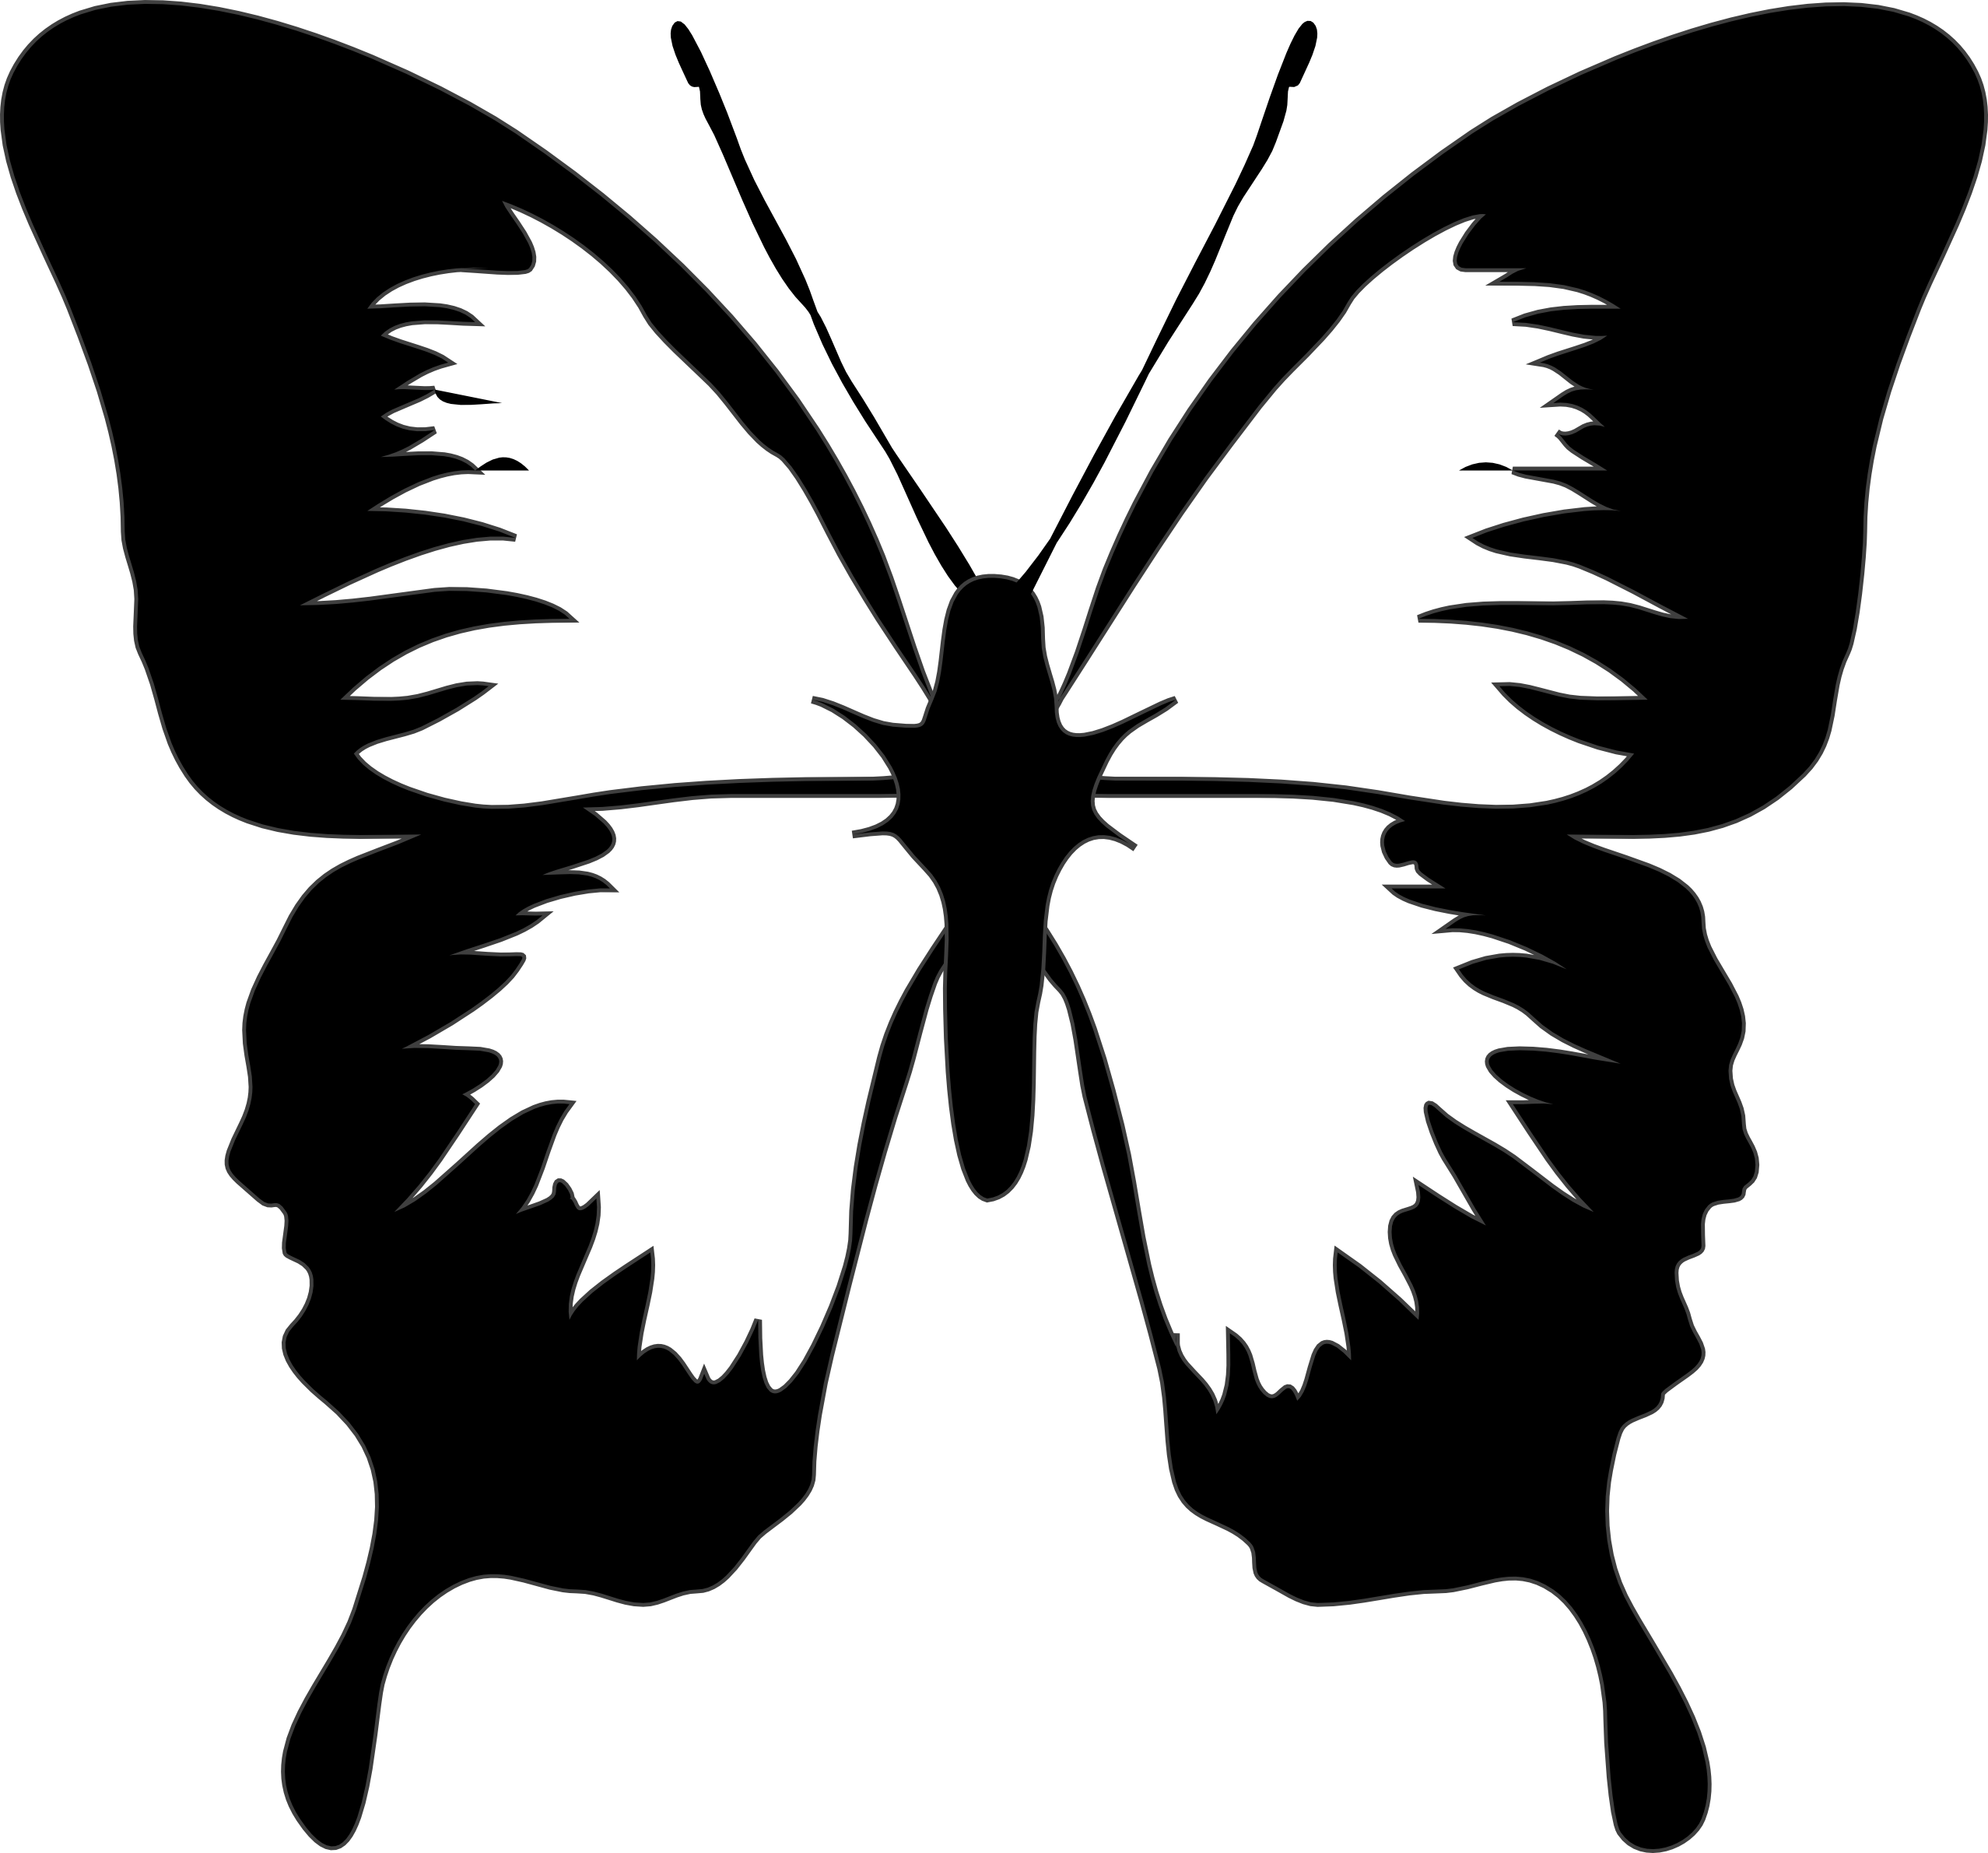 Butterflies black and white clipart clipart transparent download Free Butterfly Images Black And White, Download Free Clip Art, Free ... clipart transparent download